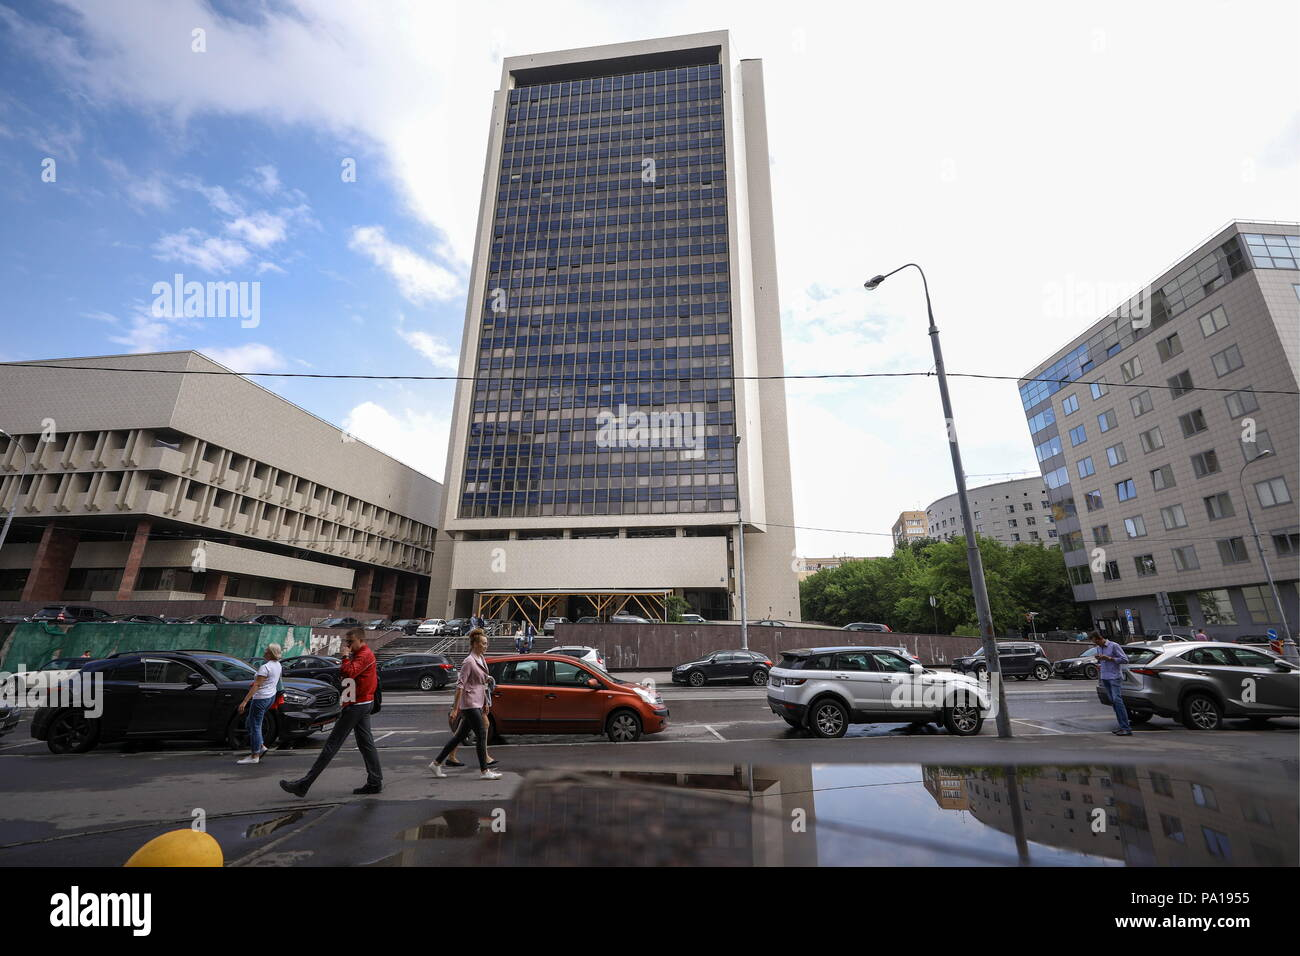 Moscow, Russia. 20th July, 2018. MOSCOW, RUSSIA - JULY 20, 2018: A view of the Moscow building of the Roscosmos State Corporation responsible for Russian space industry development. Mikhail Tereshchenko/TASS Credit: ITAR-TASS News Agency/Alamy Live News - Stock Image